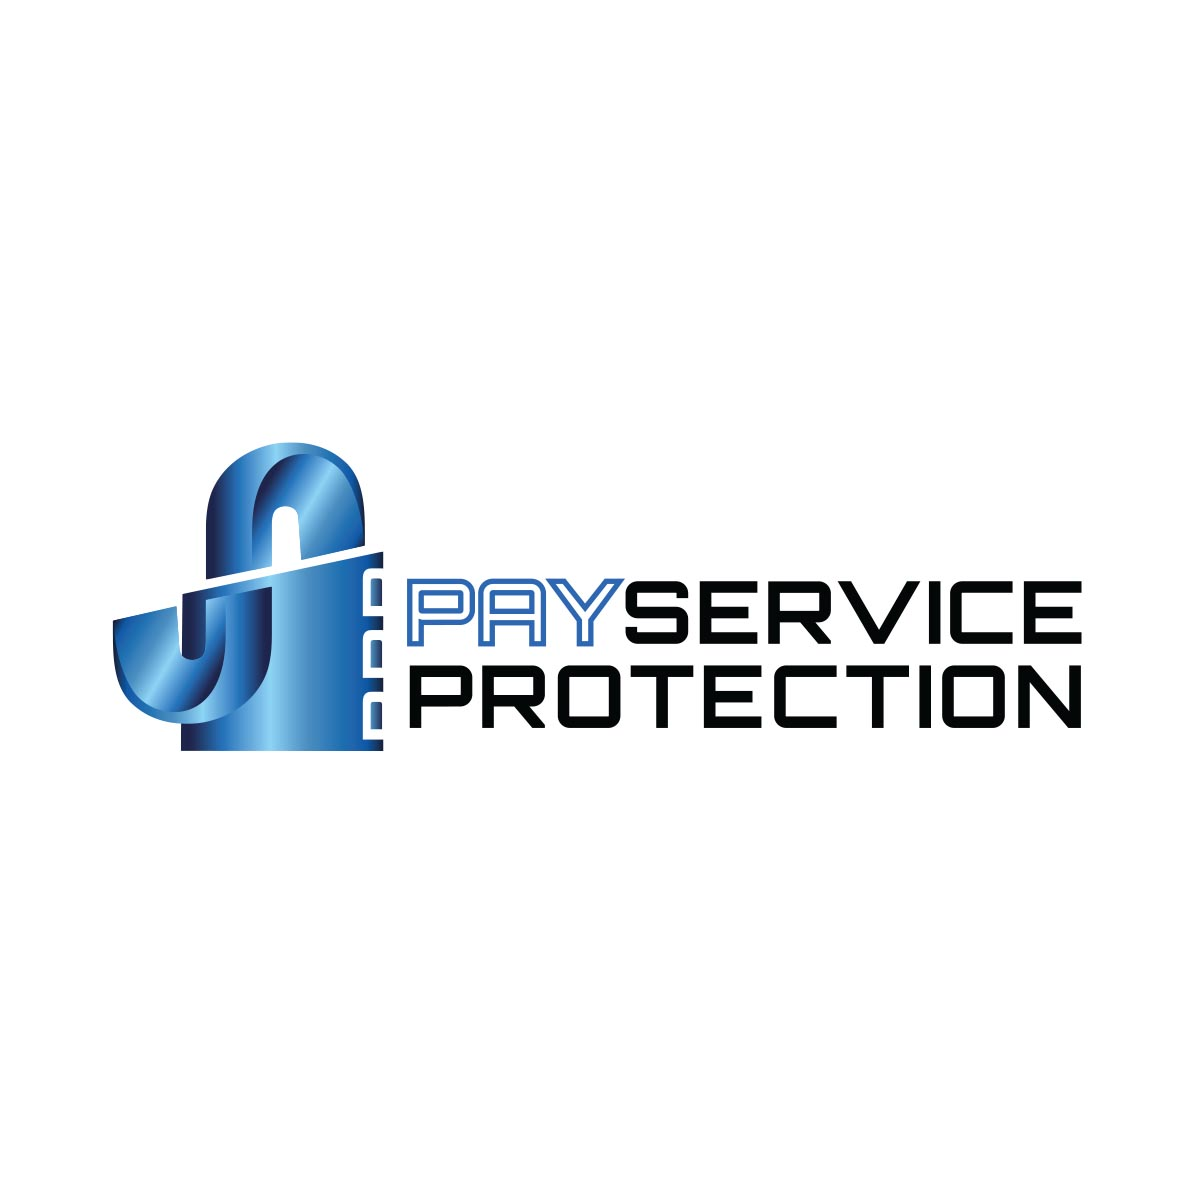 Pay Service Protection